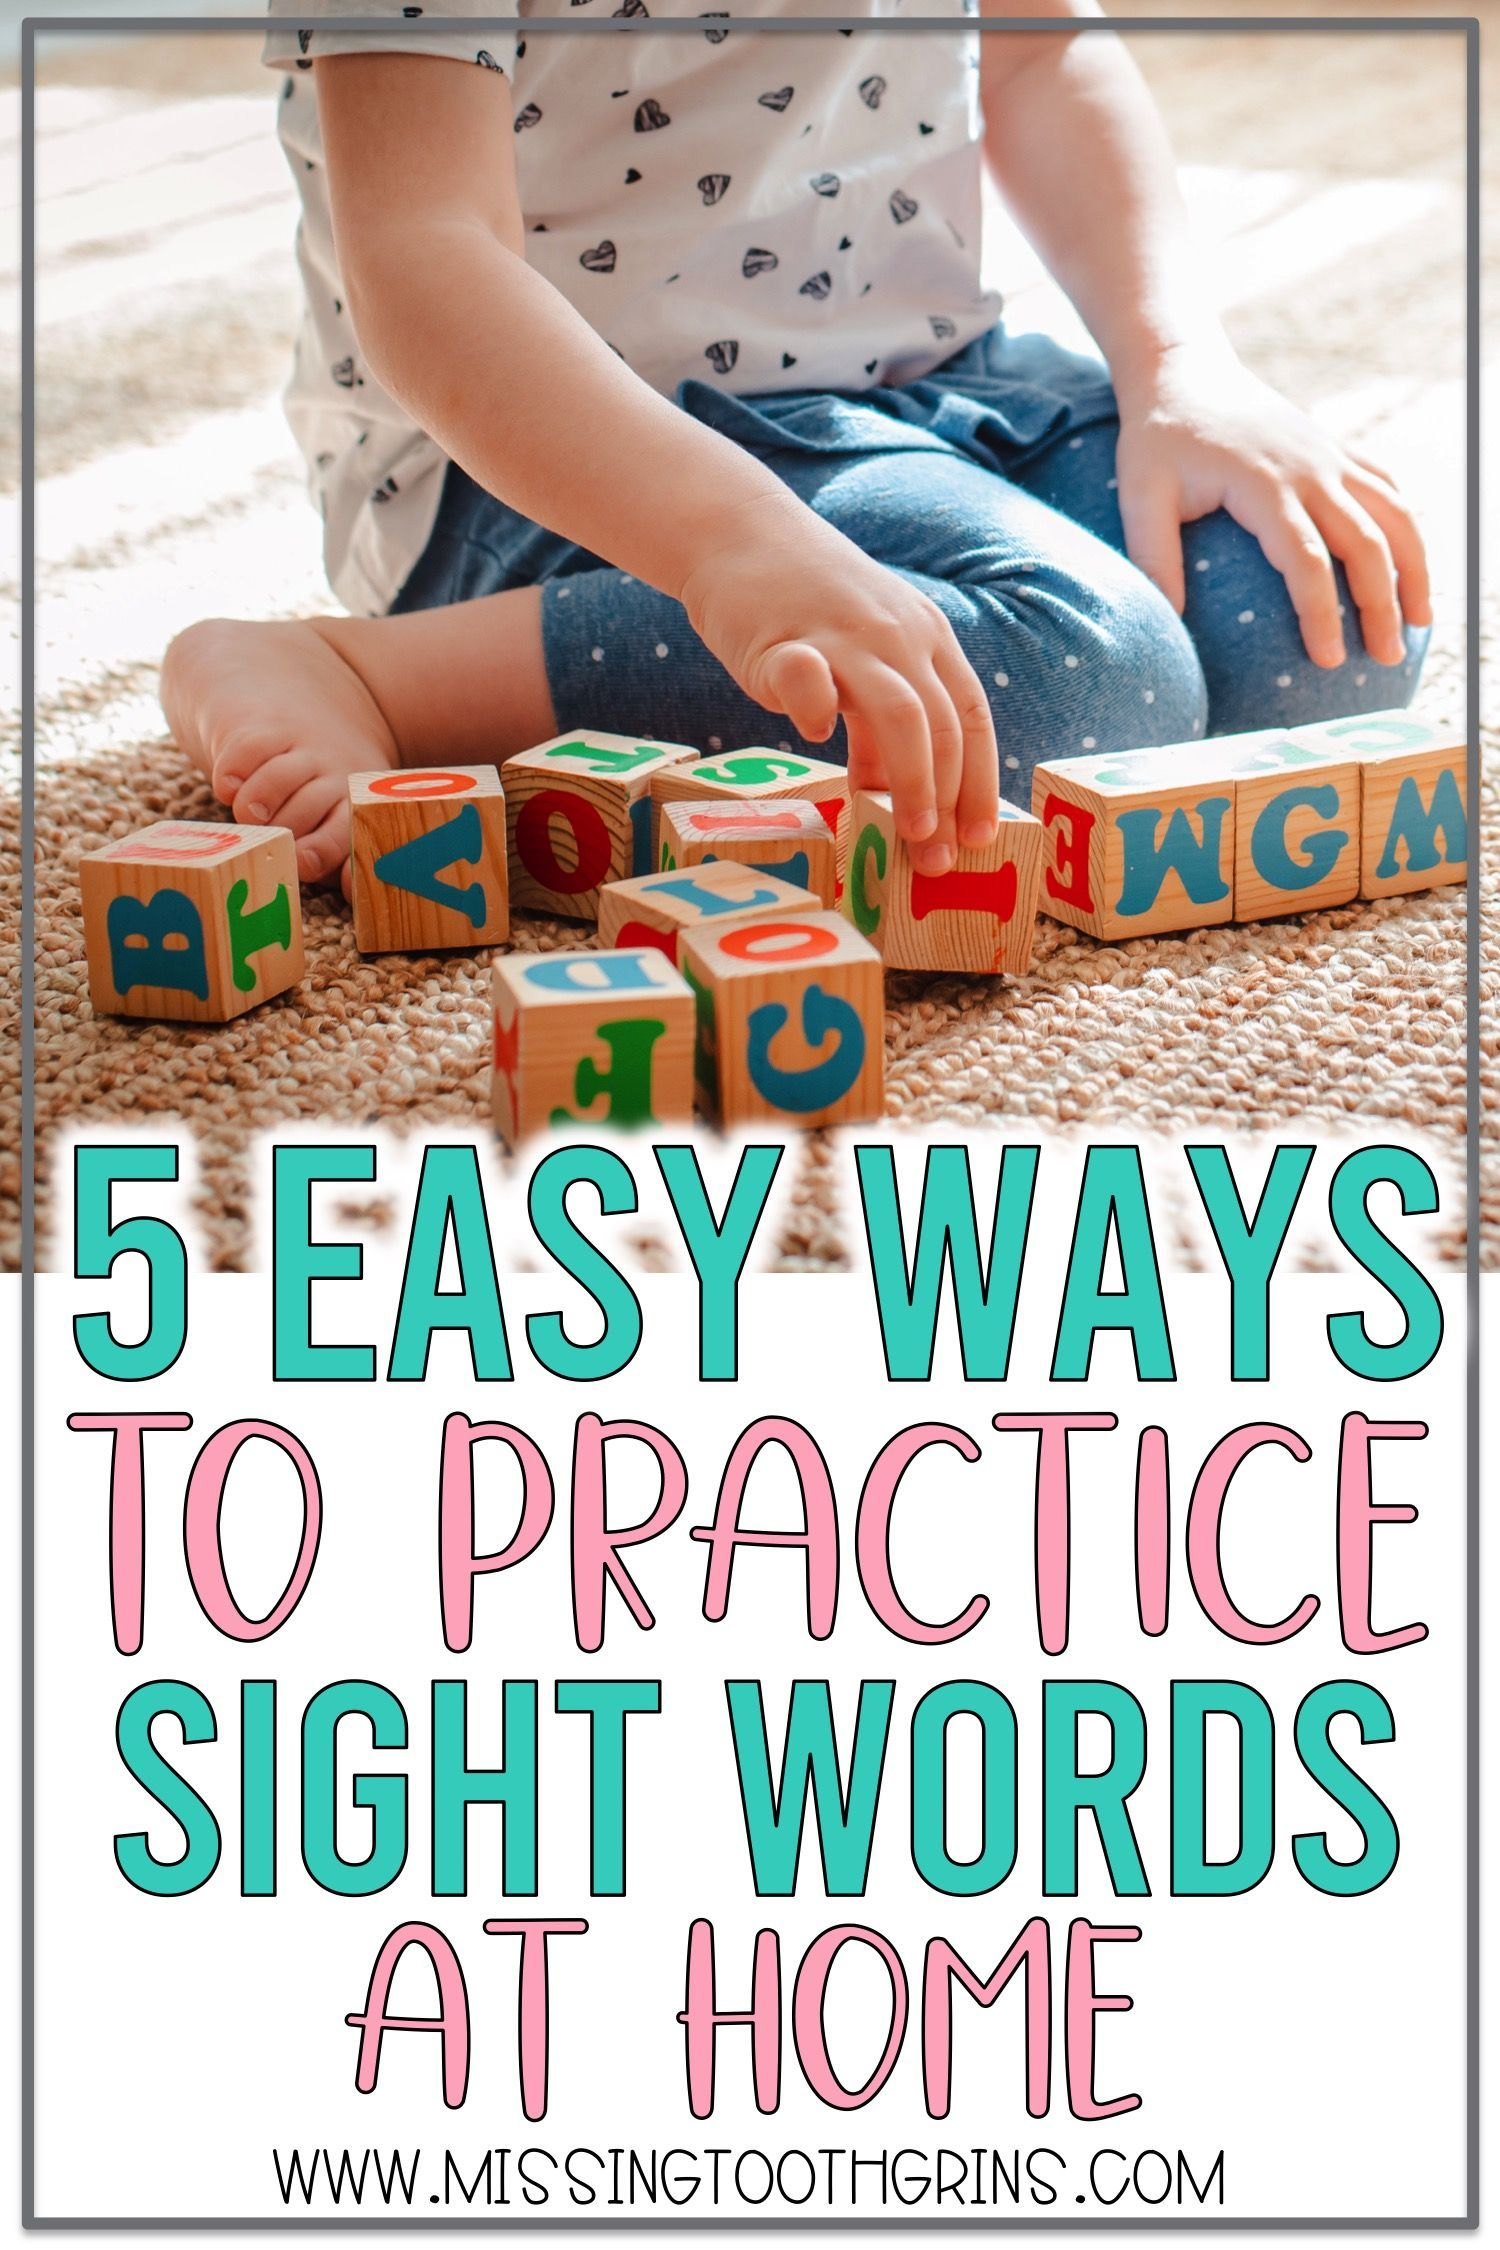 5 Ways To Practice Sight Words At Home